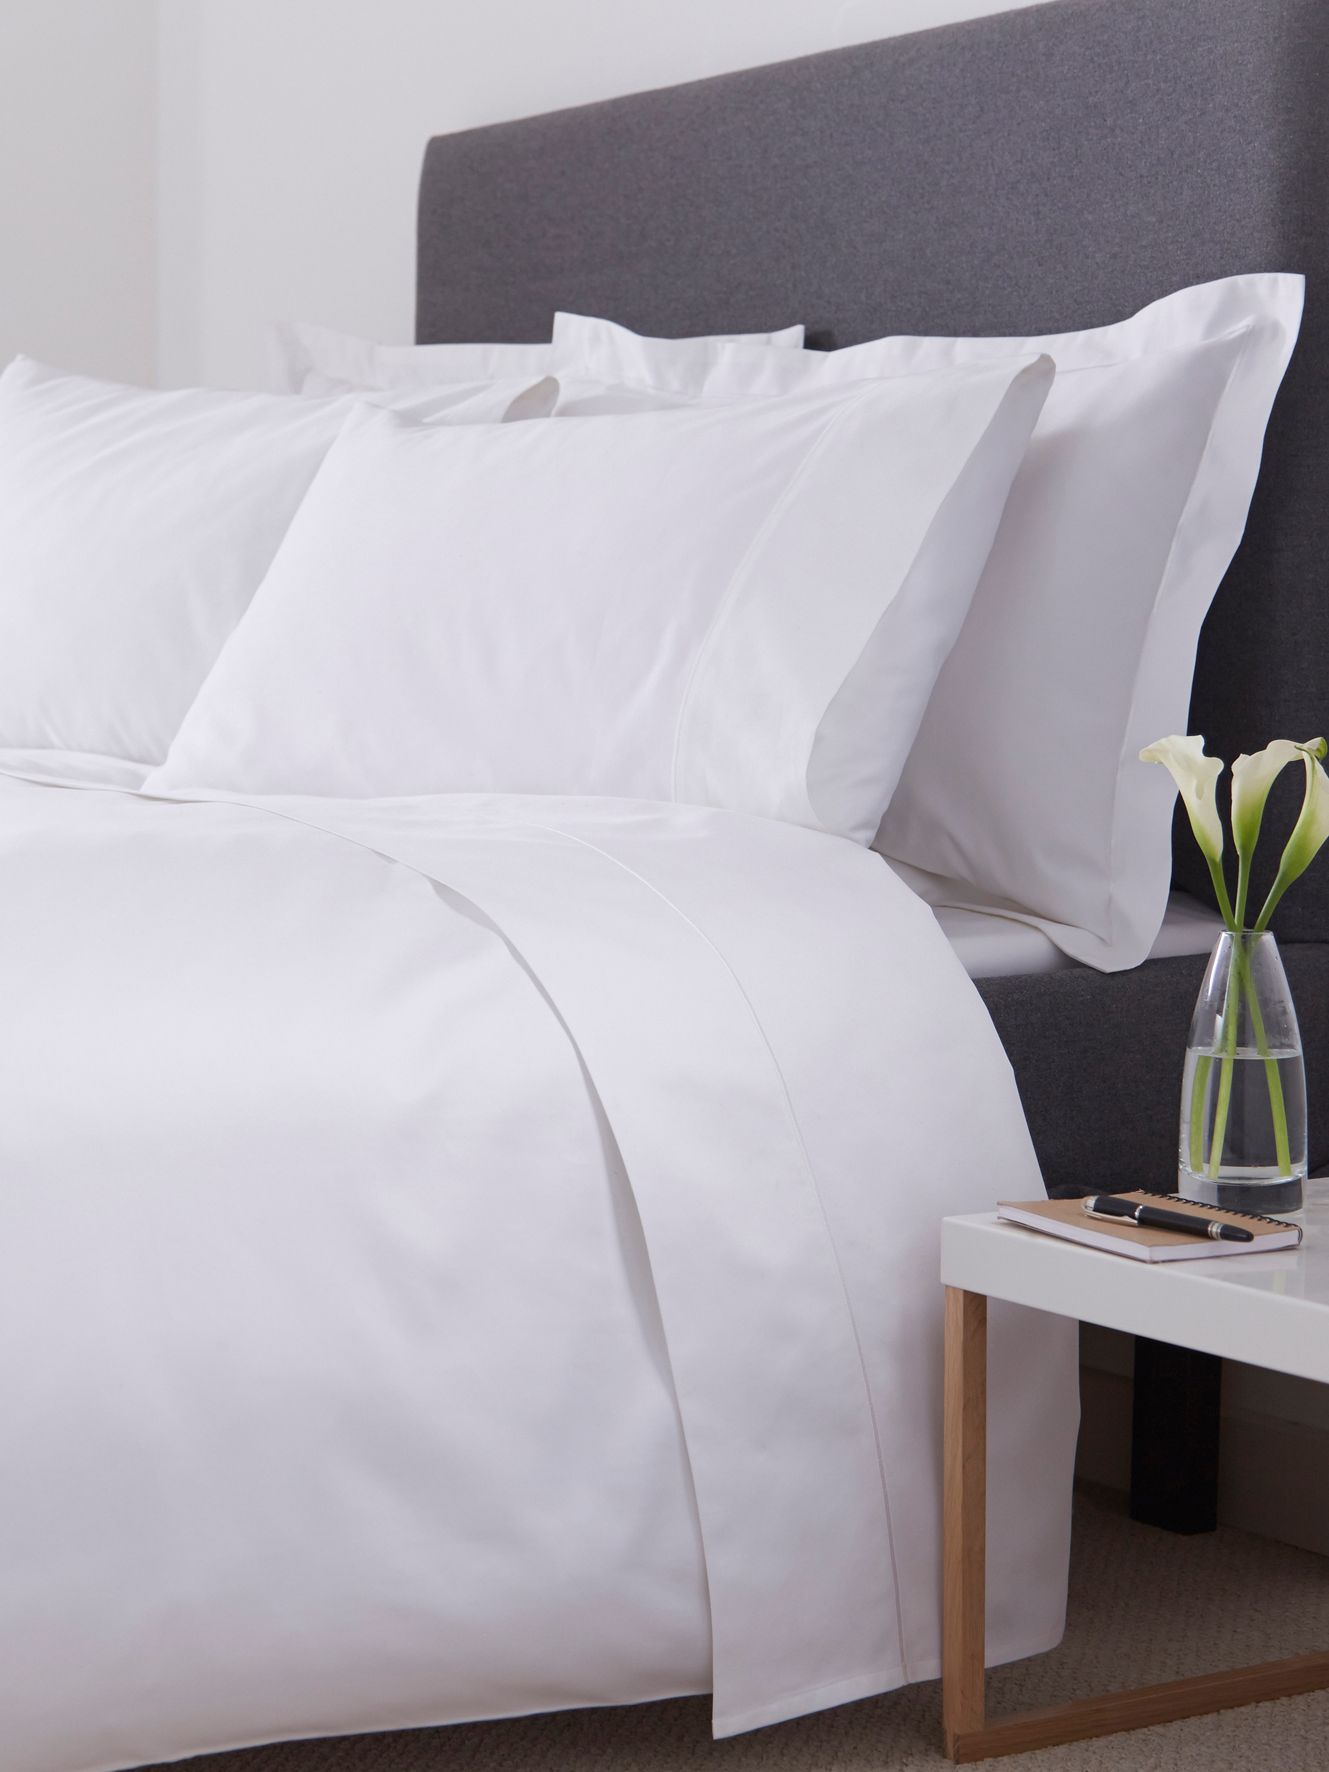 800 thread count double duvet cover set white